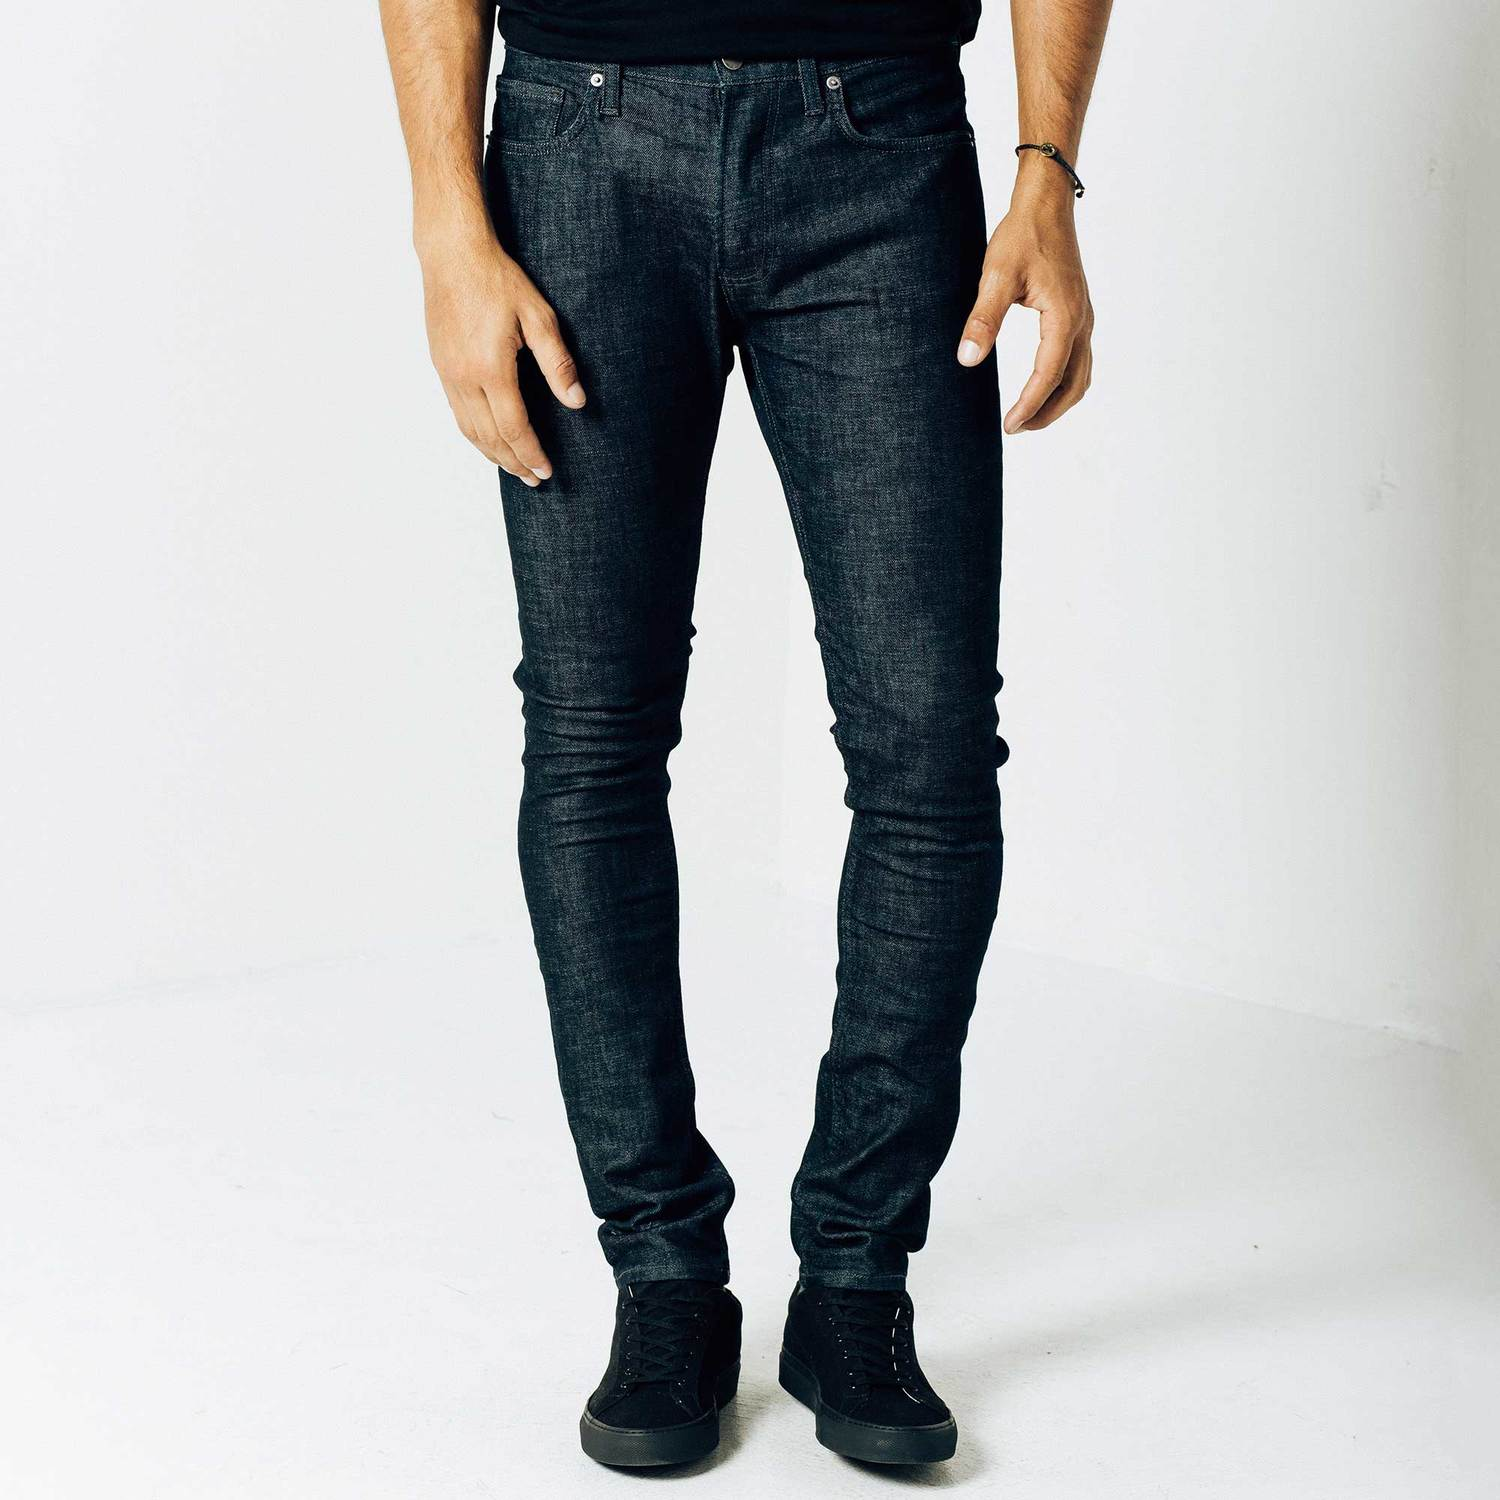 Dark Wash Jeans. Discover the dramatic look of dark wash jeans. Both men and women can enjoy wearing dark jeans with all of their favorite fashions. Denim is superbly versatile and can be worn with all kinds of textures and colors, from snake skin to cotton.